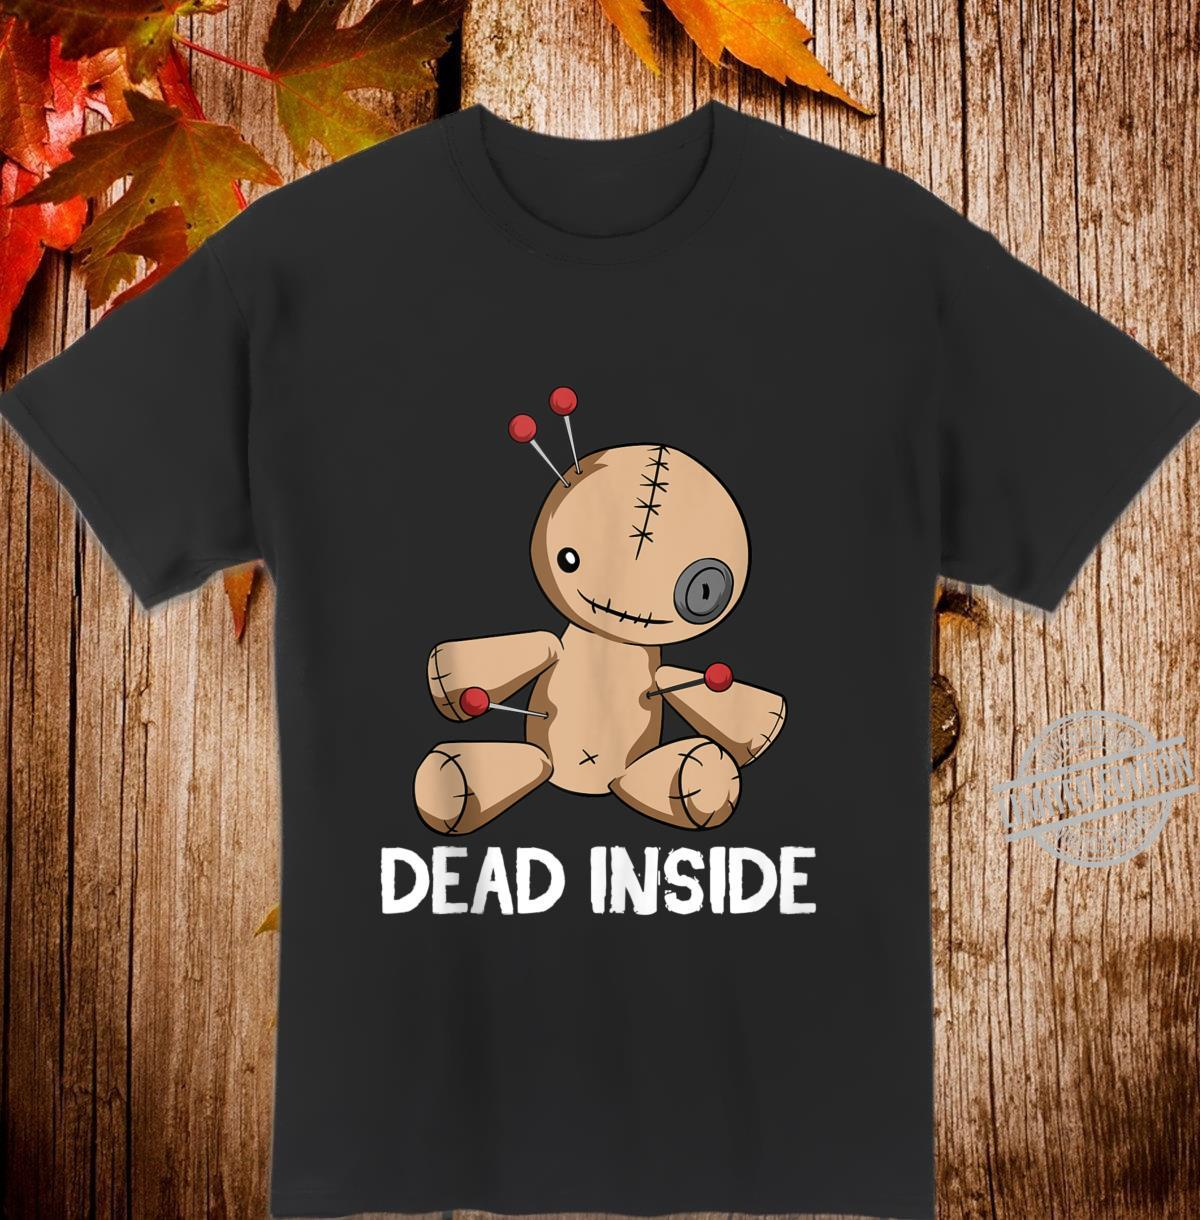 Thinking of You Voodoo Doll Witchcraft Spells Dolls Shirt